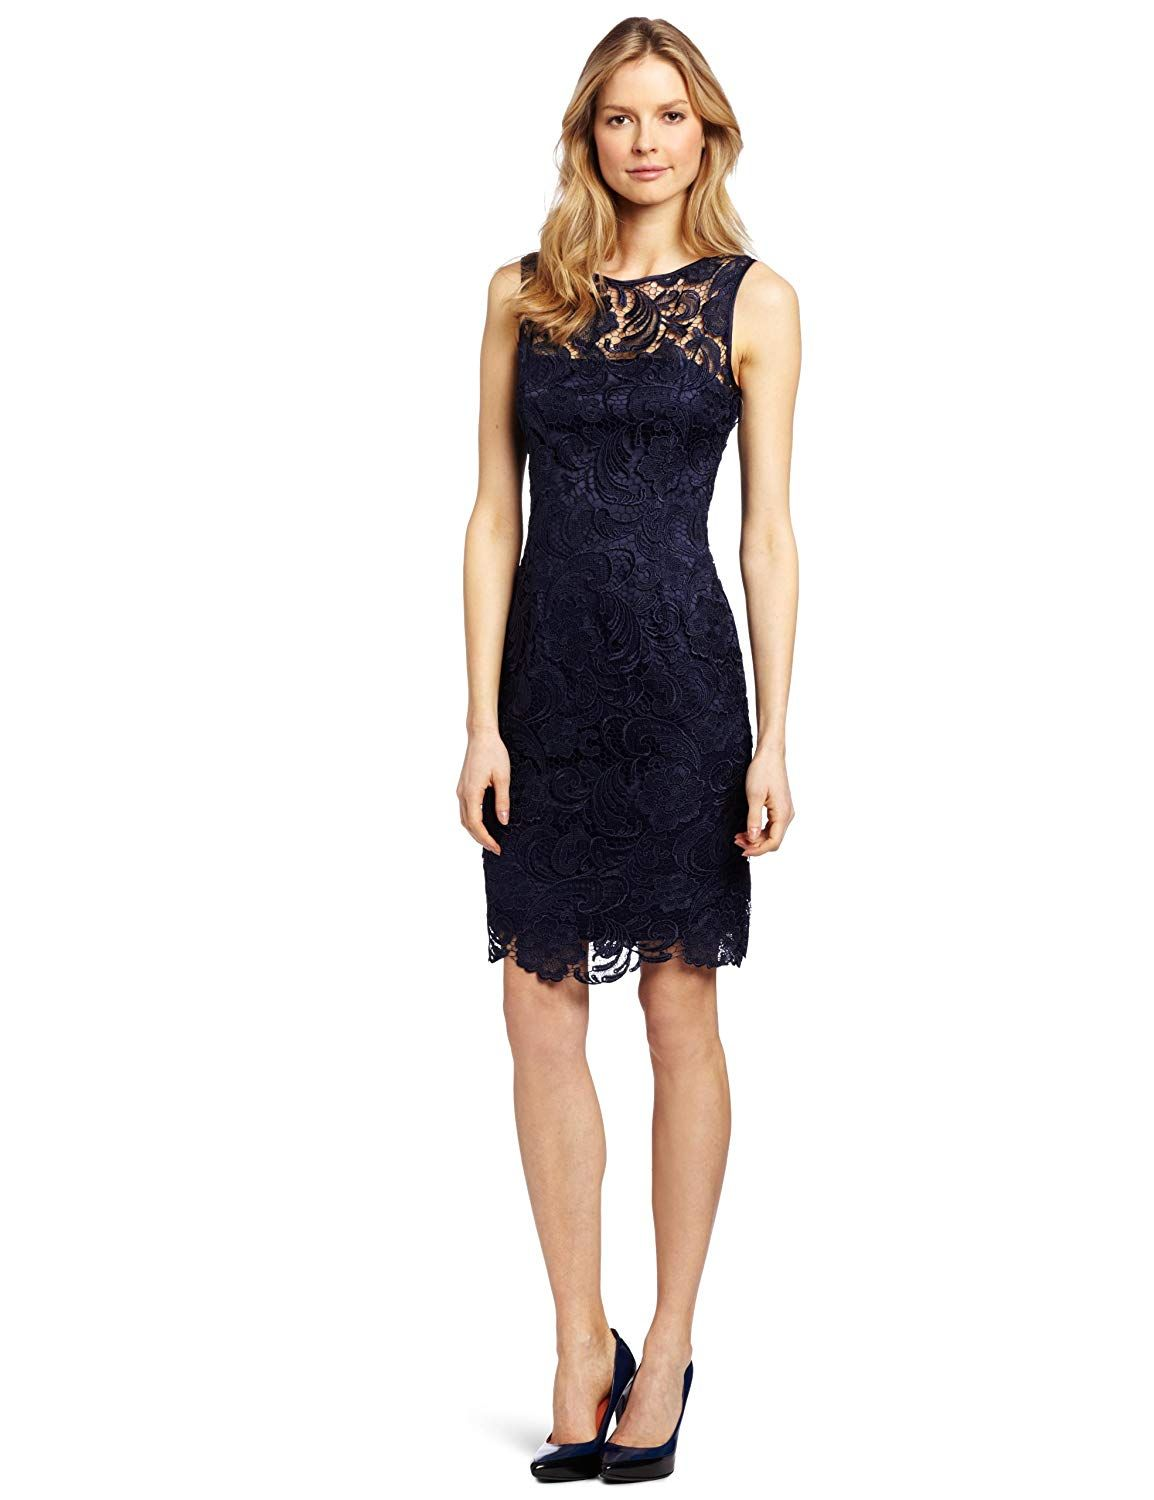 Adrianna Papell Women's Illusion Neckline Lace Dress 4.2 out